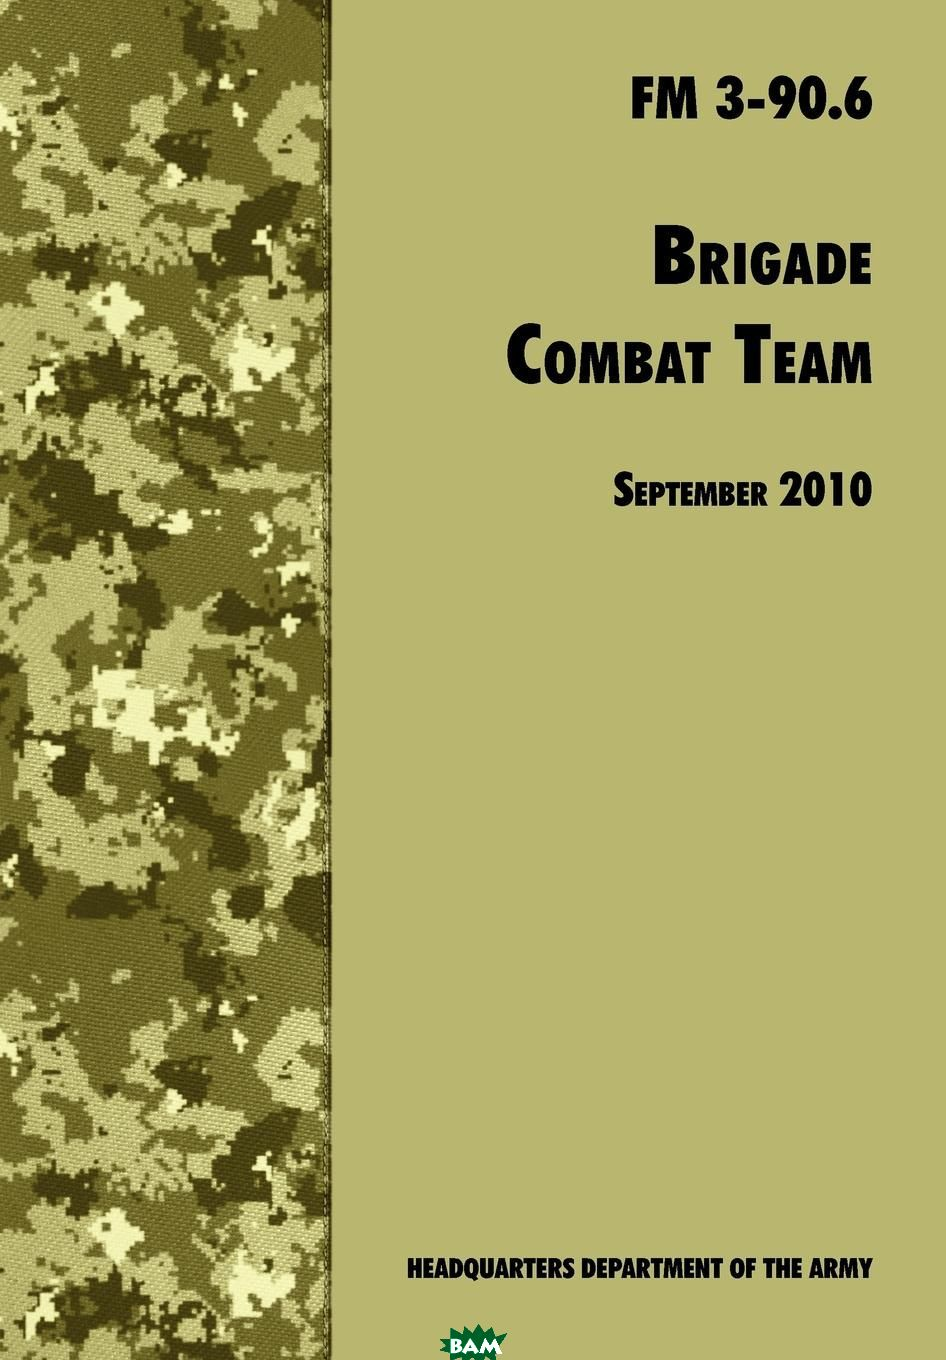 Купить Brigade Combat Team. The Official U.S. Army Field Manual FM 3 90.6 (14 September 2010), U.S. Department of the Army, Army Maneuver Center of Excellence, Army Training and Doctrine Command, 9781780391762